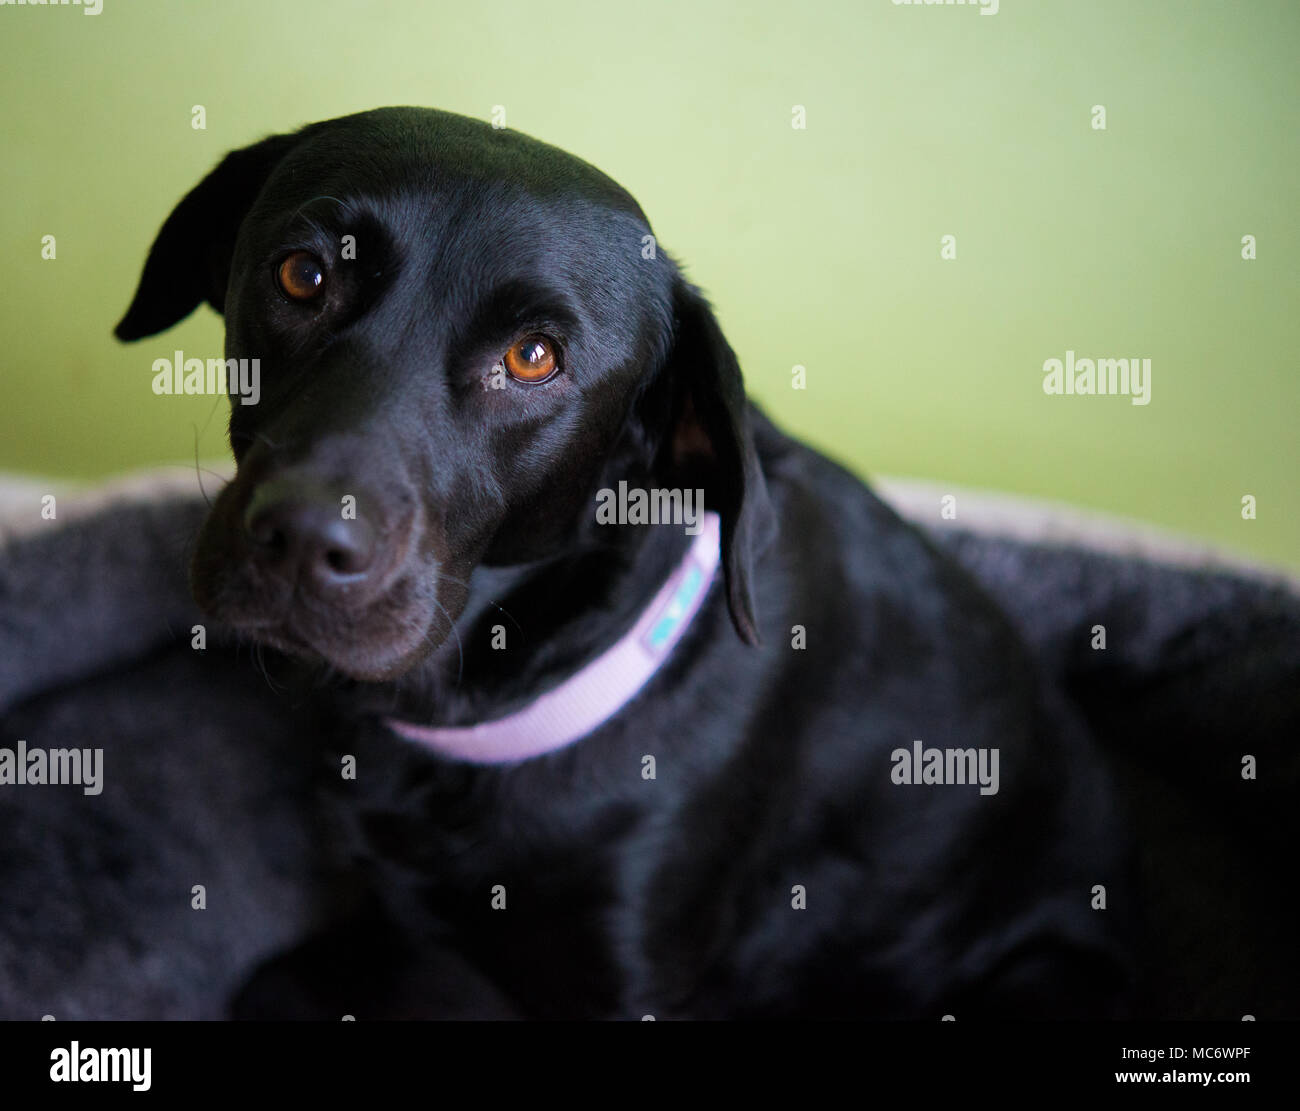 Soulful black Labrador - Stock Image